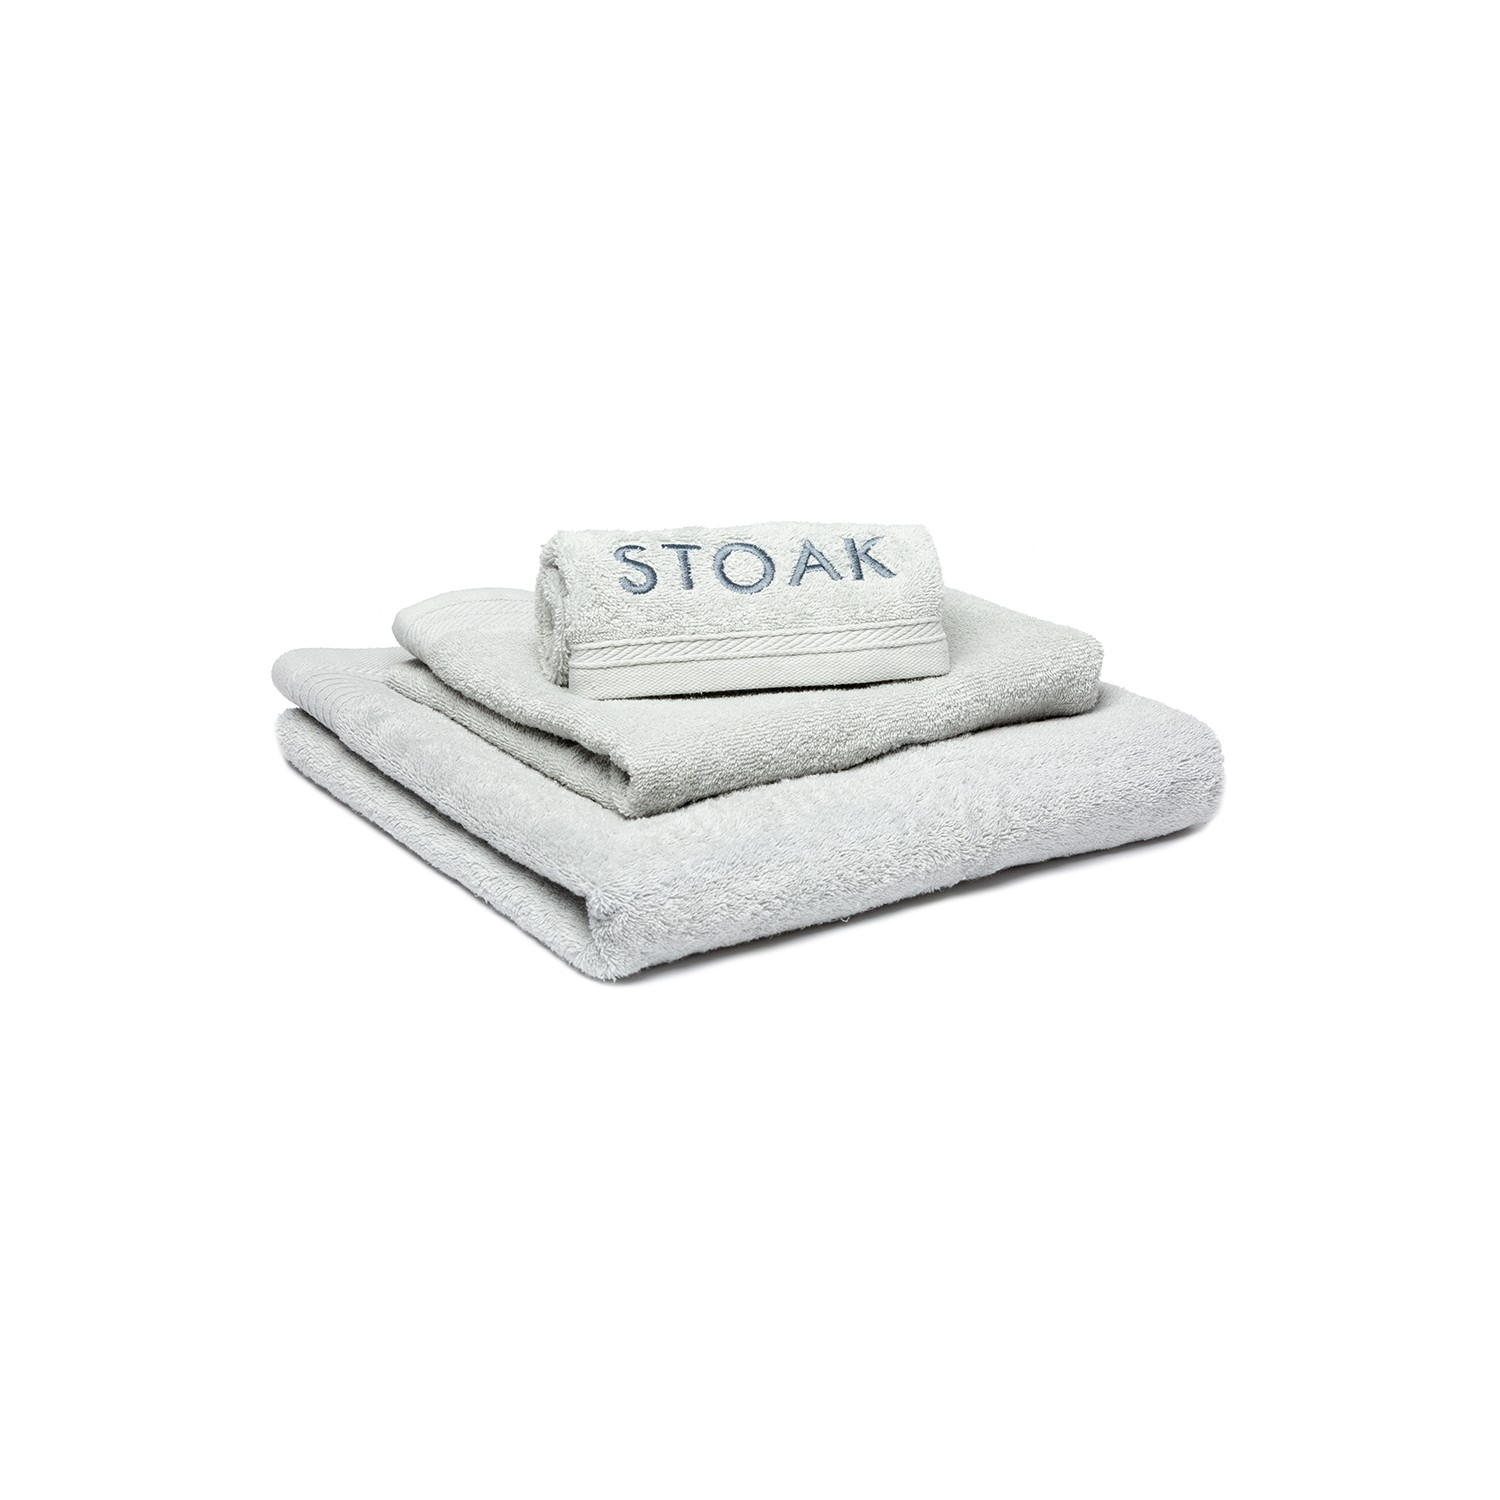 STOAK ROCK TOWEL (Organic Cotton)